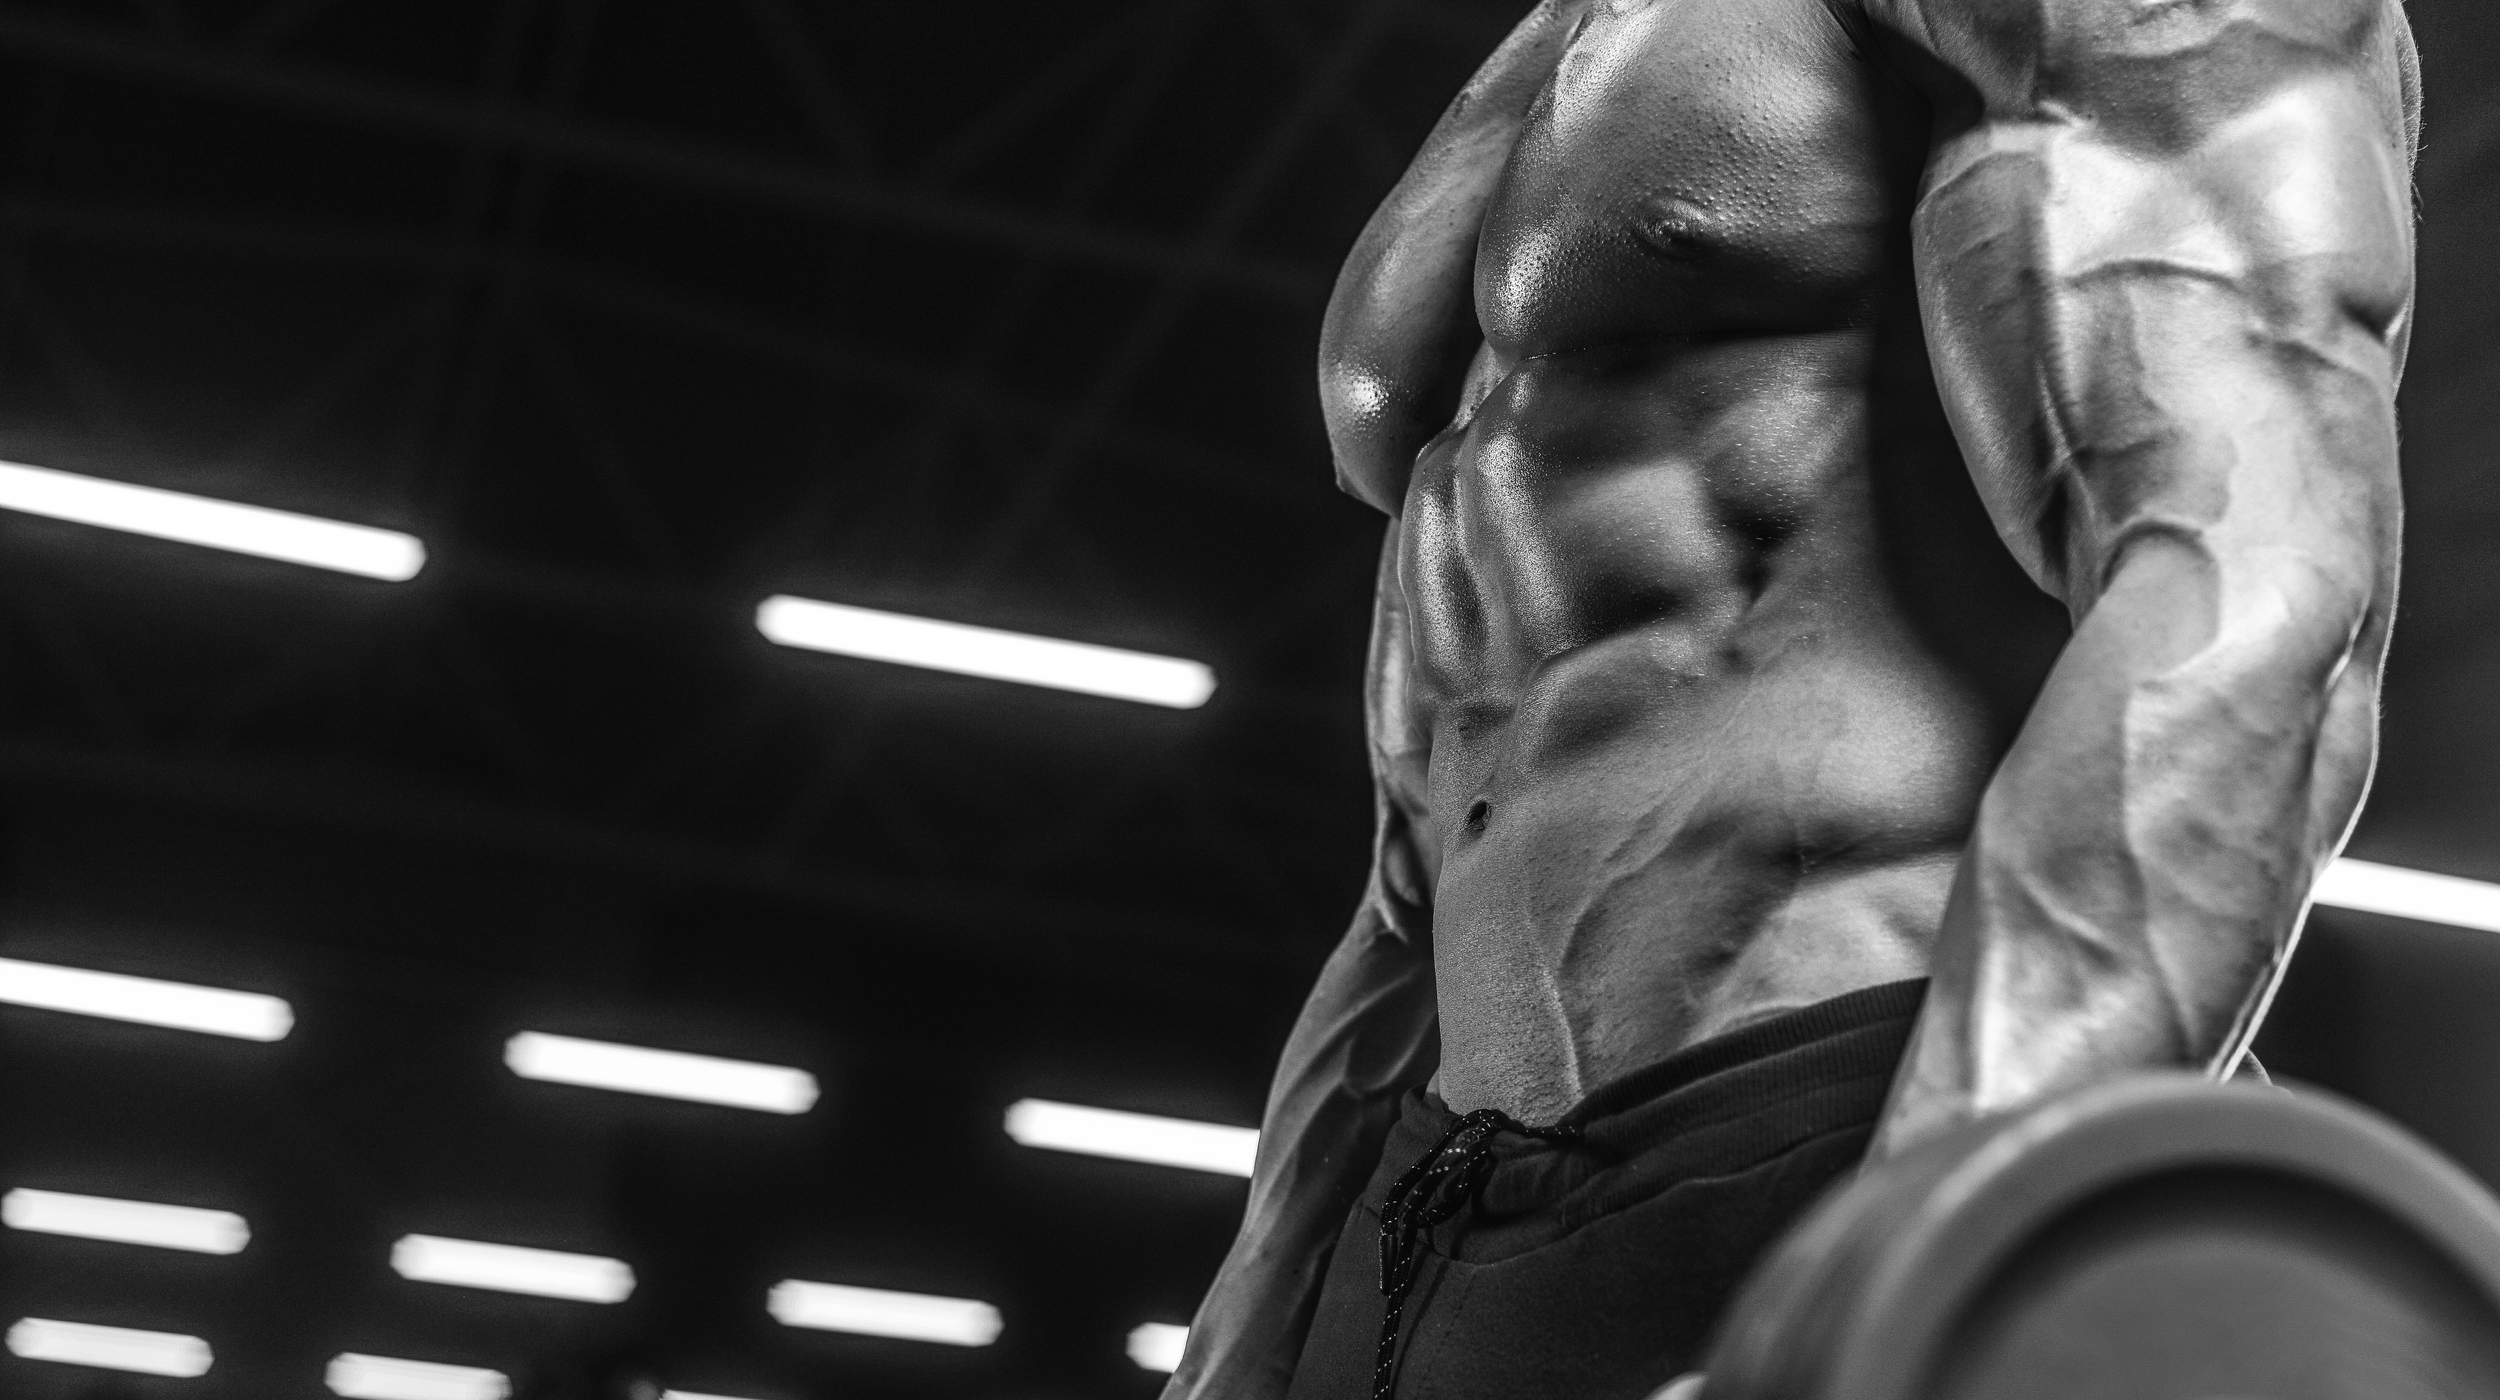 What You Should Know if You Want to be a Bodybuilder